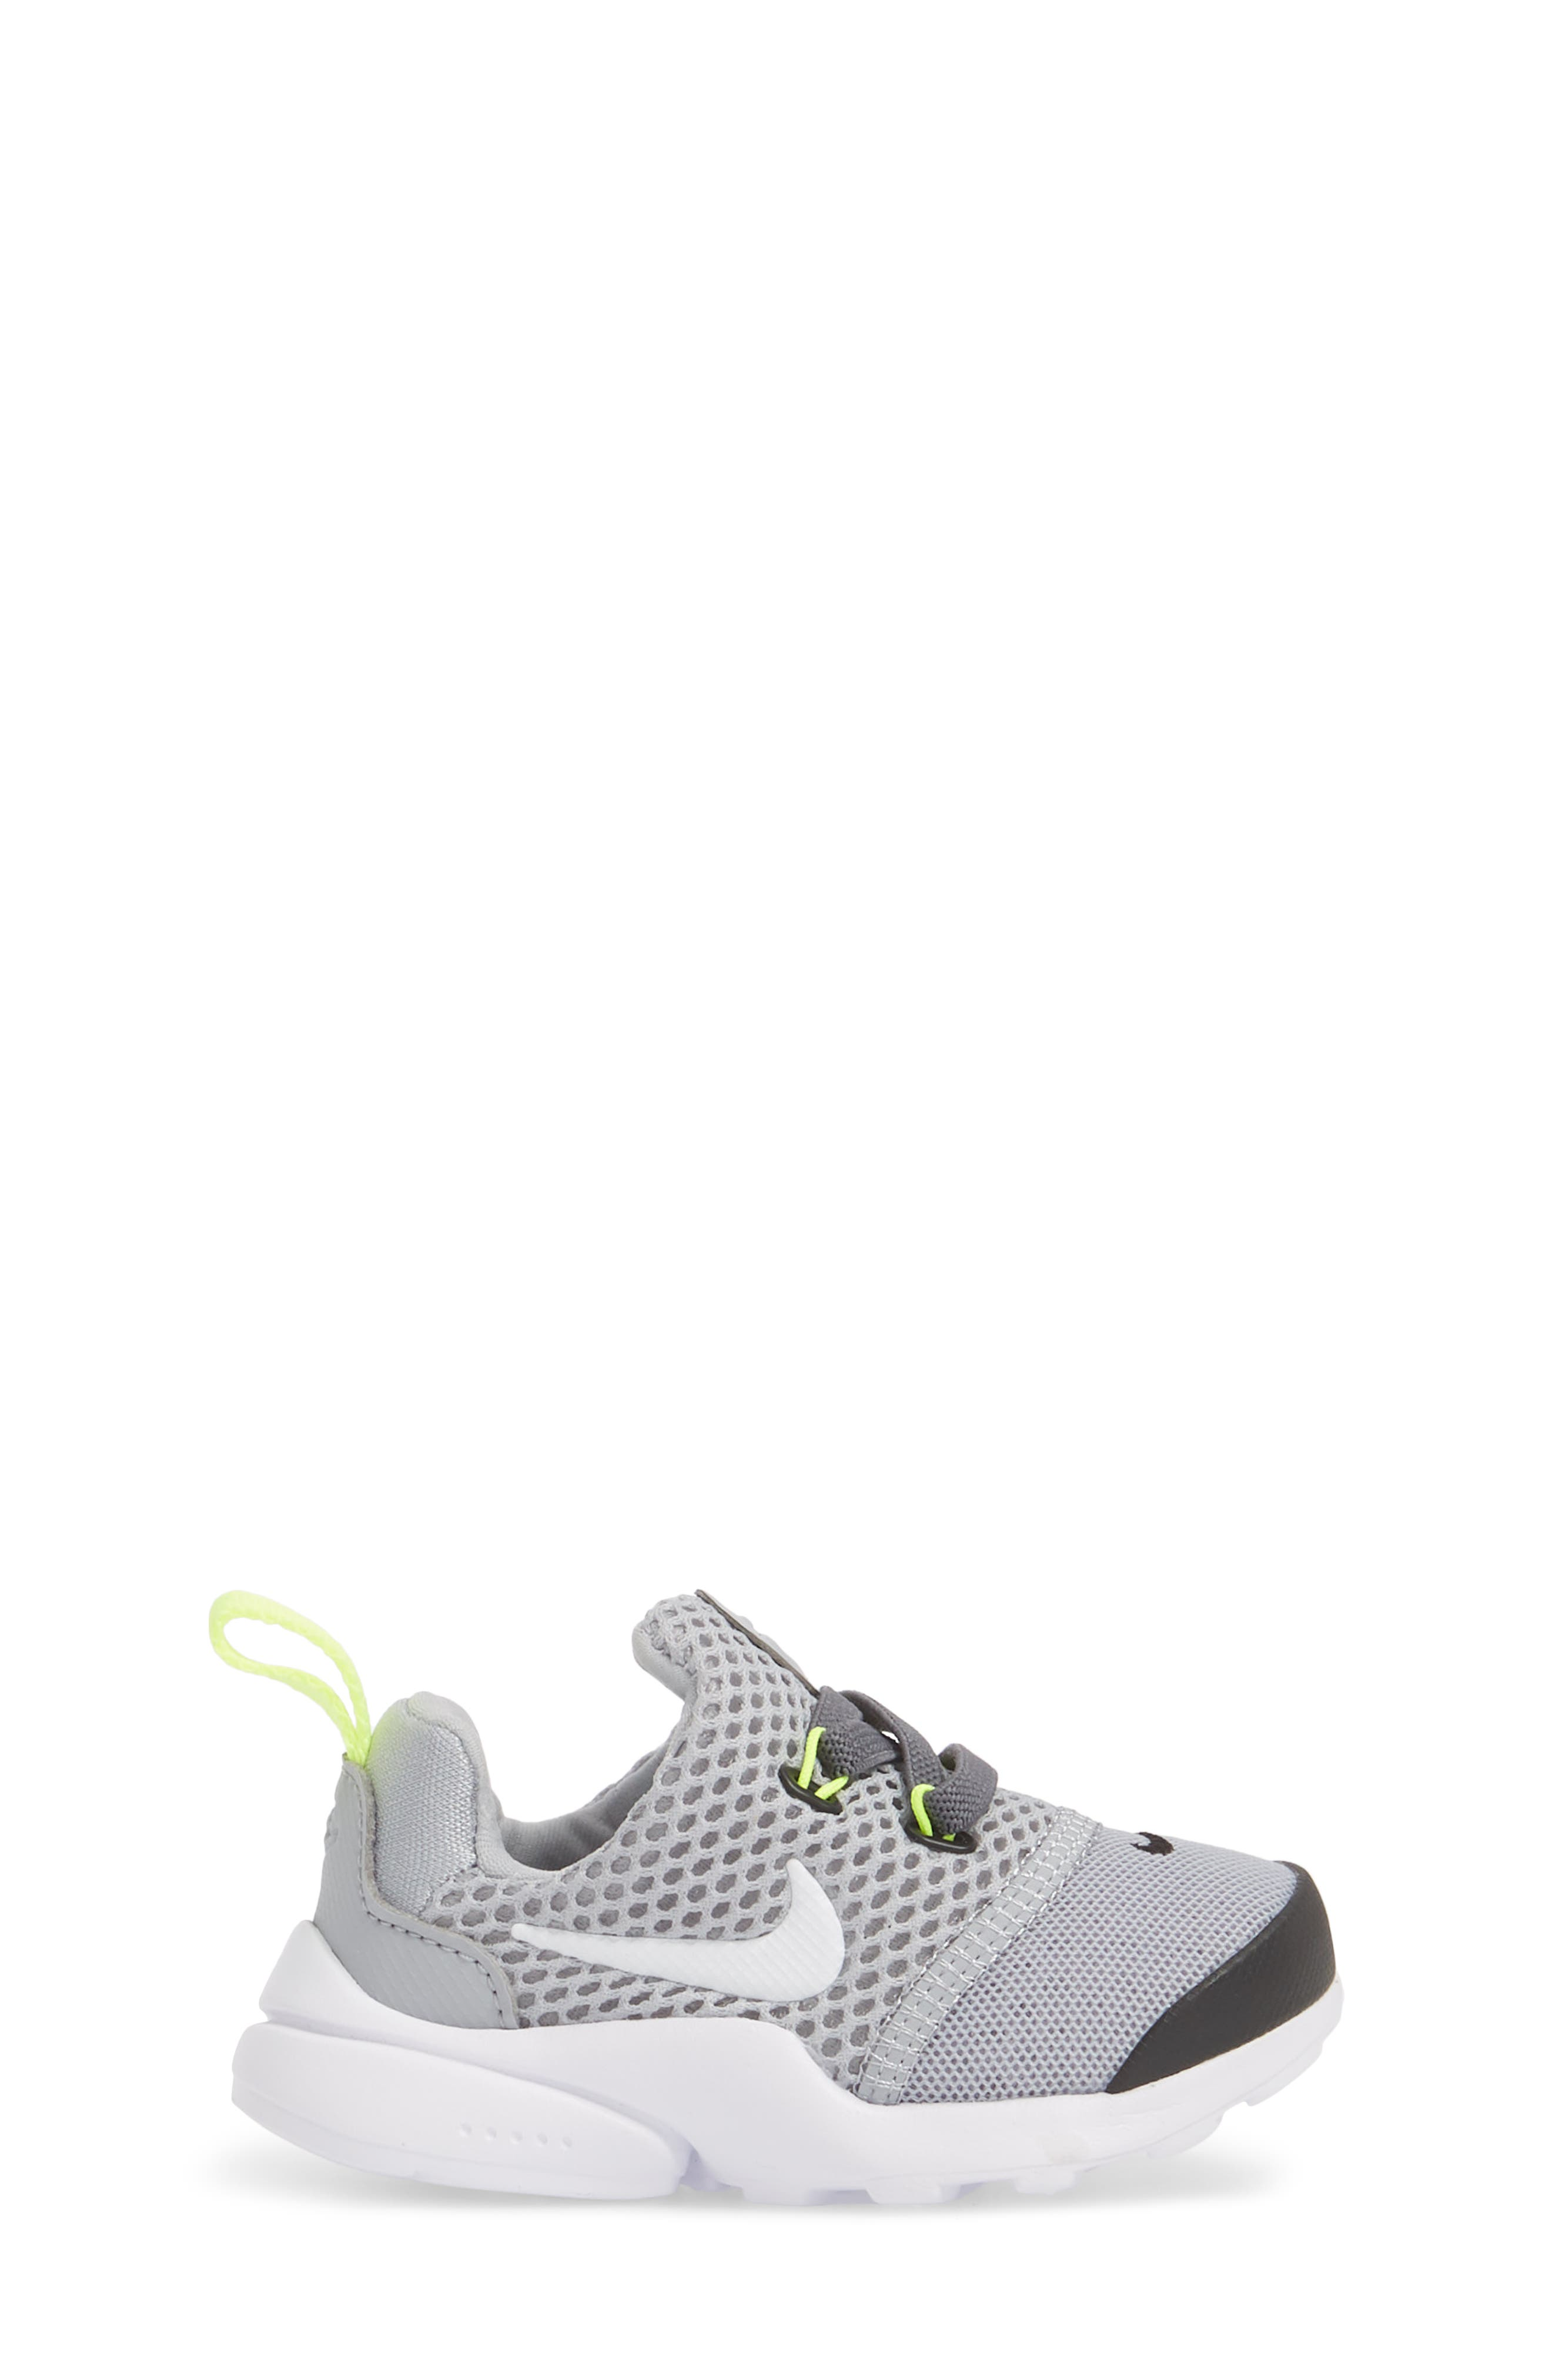 Presto Fly GS Sneaker,                             Alternate thumbnail 3, color,                             Grey/ White/ Black/ Volt